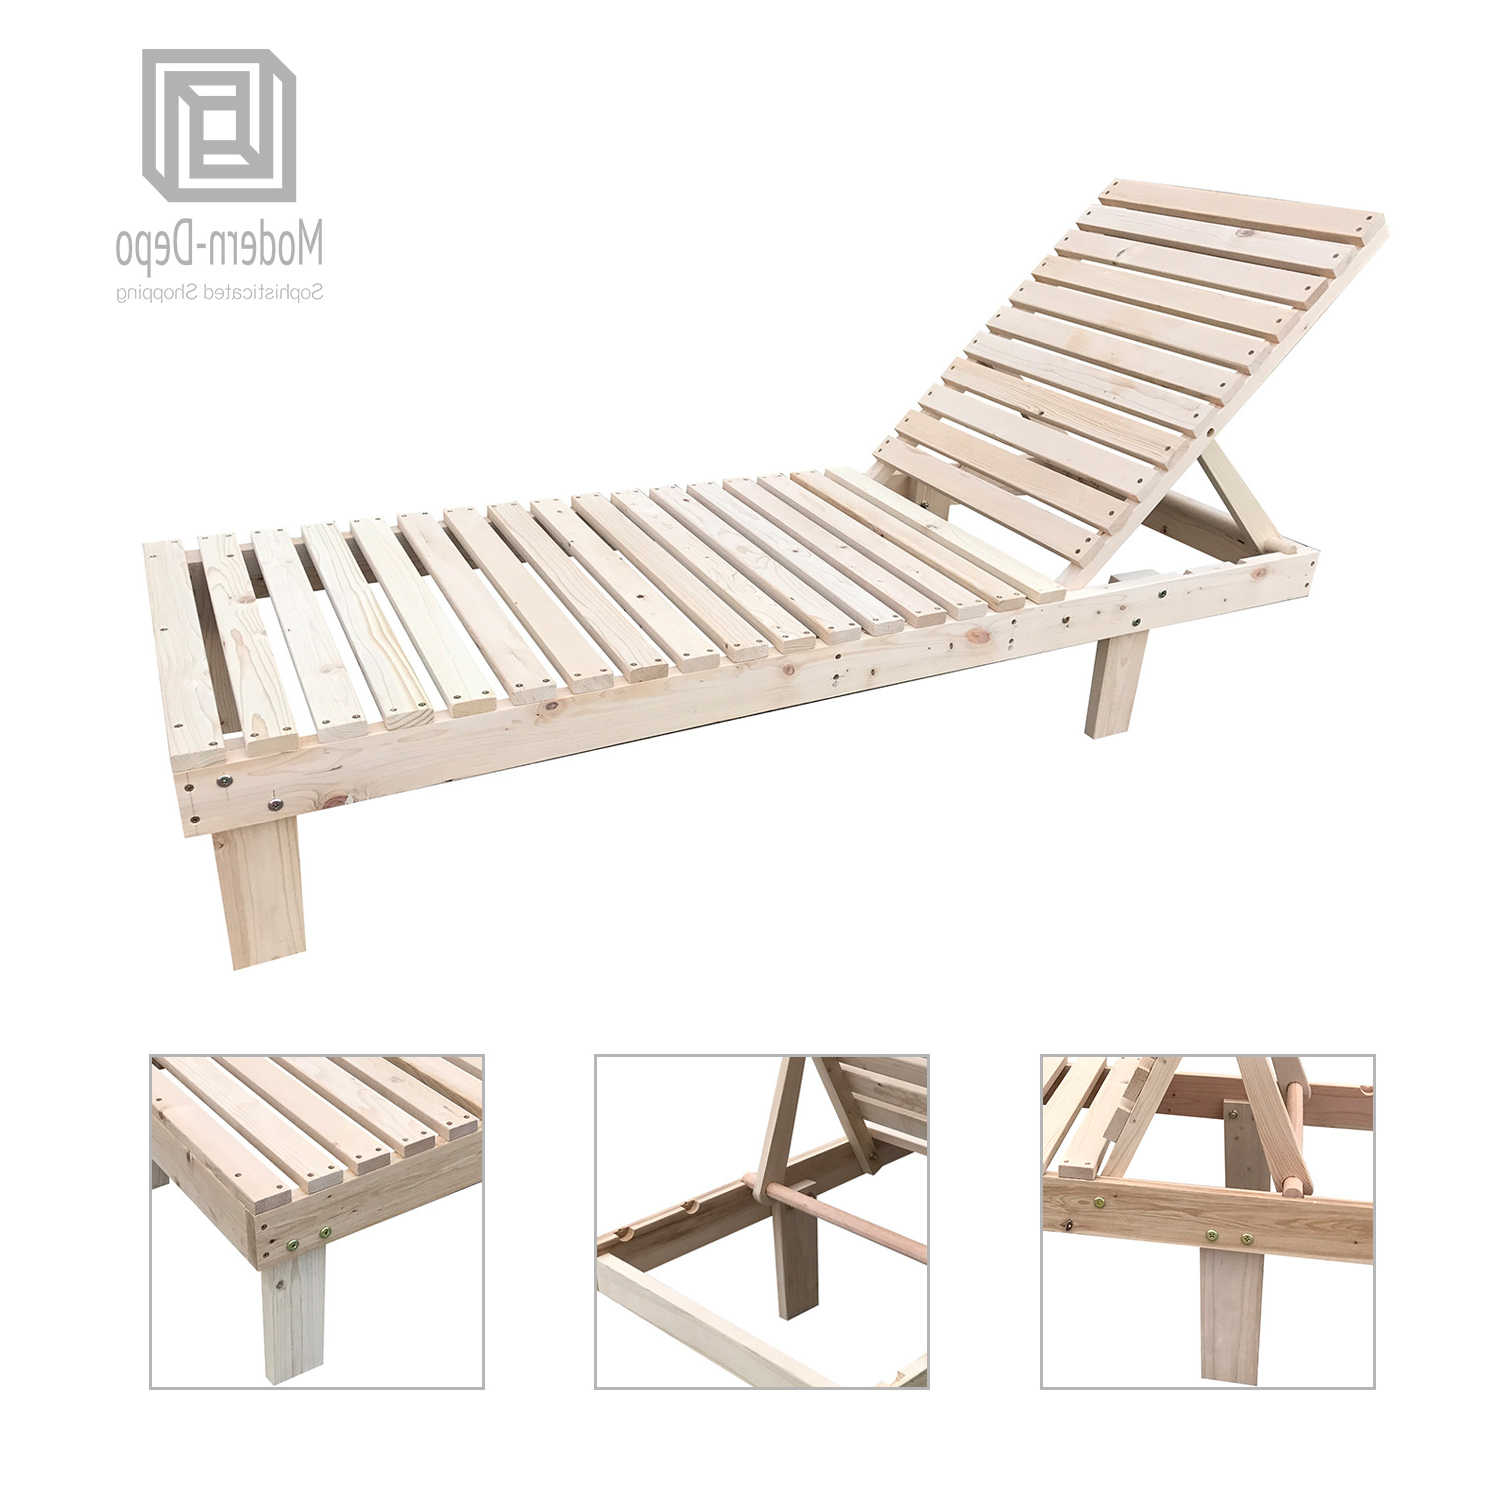 Latest Outdoor Adjustable Wood Chaise Lounges For Details About Patio Spa Pool Wooden Chaise Lounge Adjustable Chair Outdoor Garden Furniture (View 6 of 25)